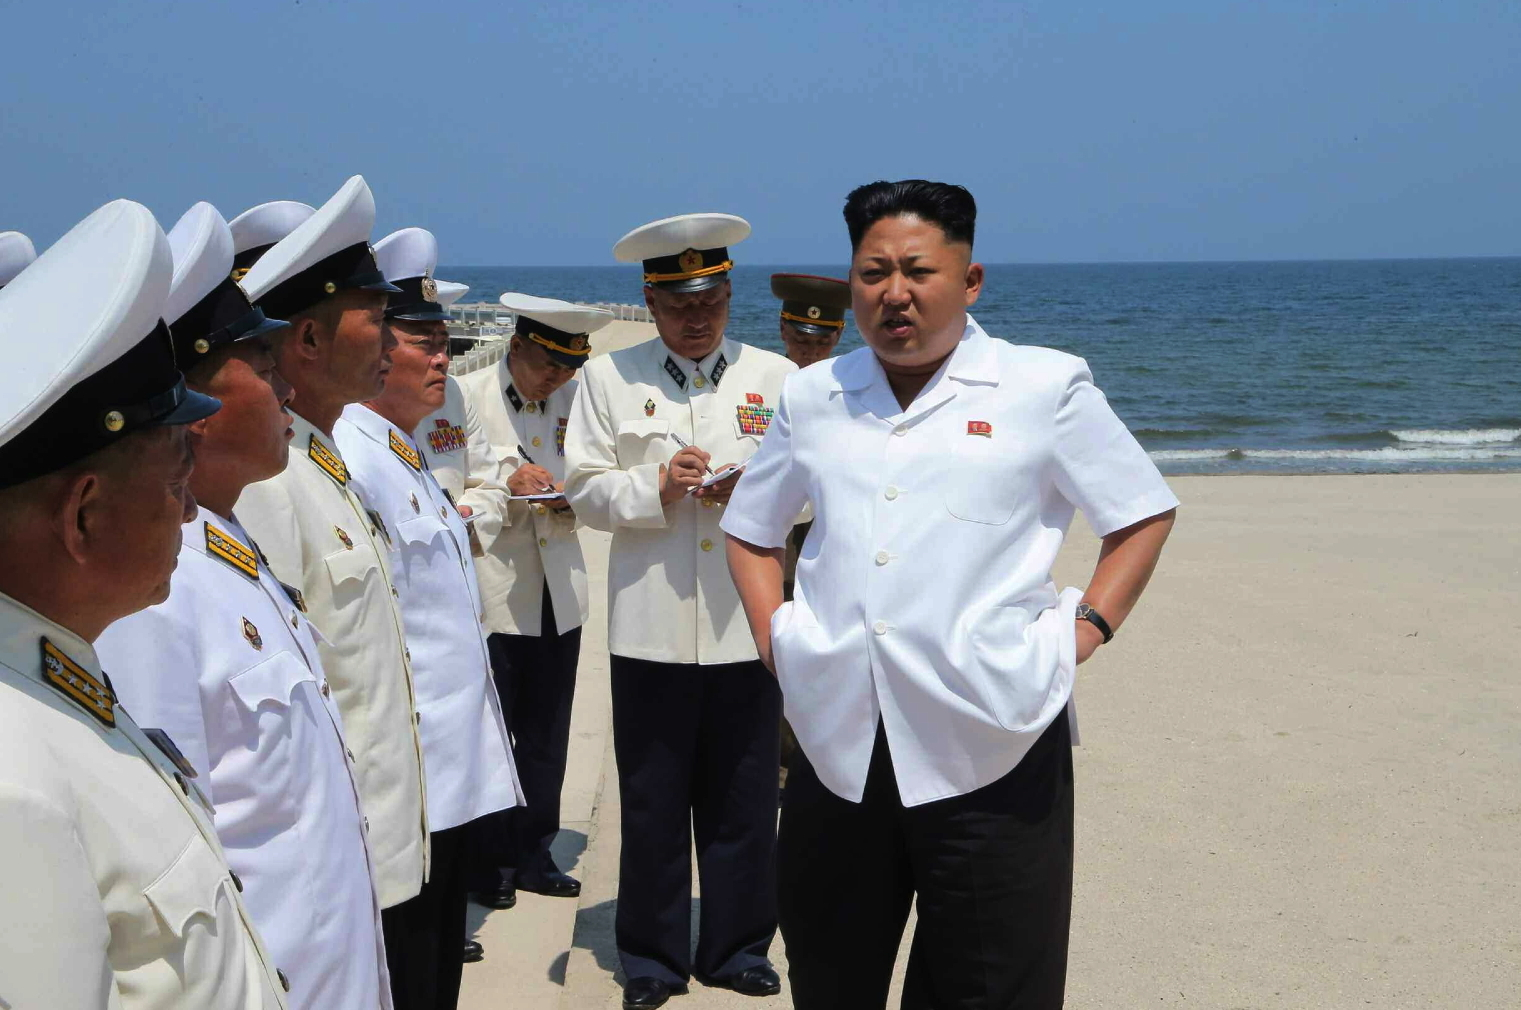 Kim Jong Un talks with KPA Navy commanding officers prior to an assessment of their swimming abilities (Photo: Rodong Sinmun).